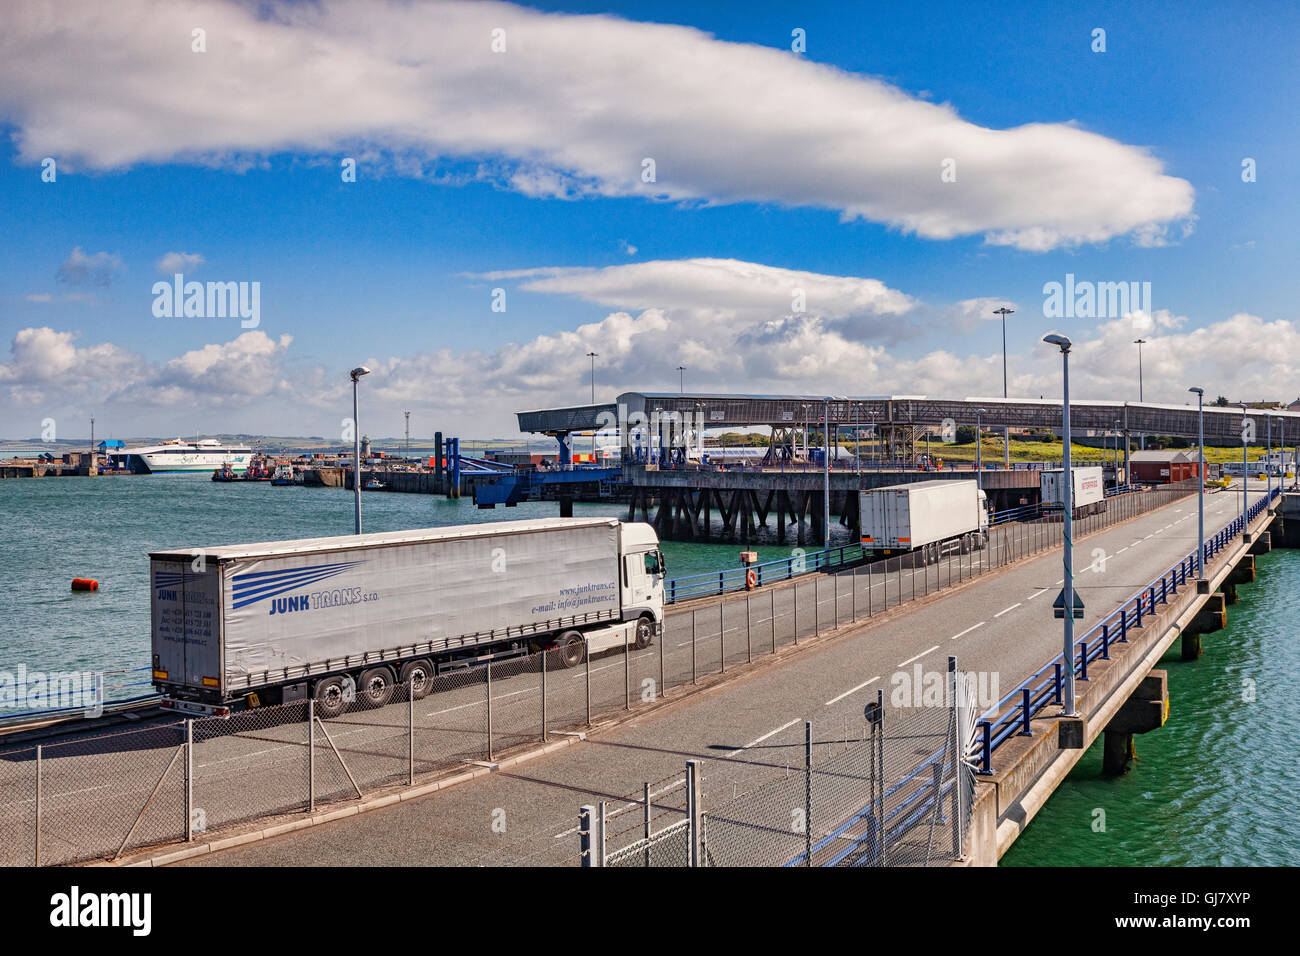 Lorries approaching Holyhead Ferry Terminal, Anglesey, Wales, UK - Stock Image